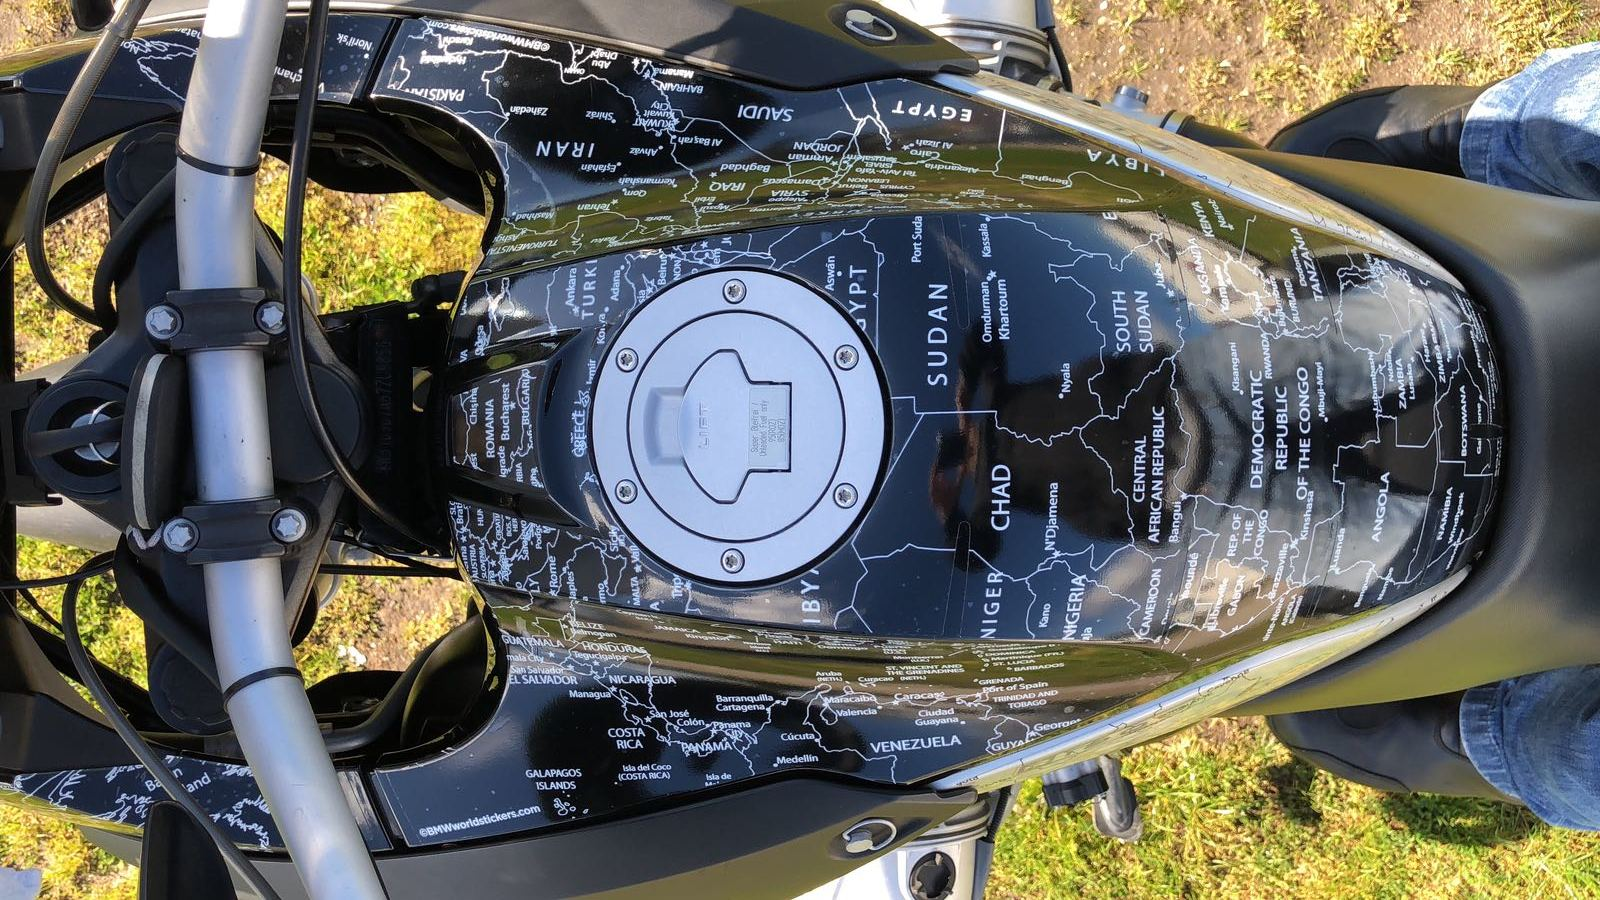 BMW R1200GS 2004 to 2007 Bmw World Stickers Stunning Picture Position Tank Top Aerial View White Map Transparent Decals On Black Bike